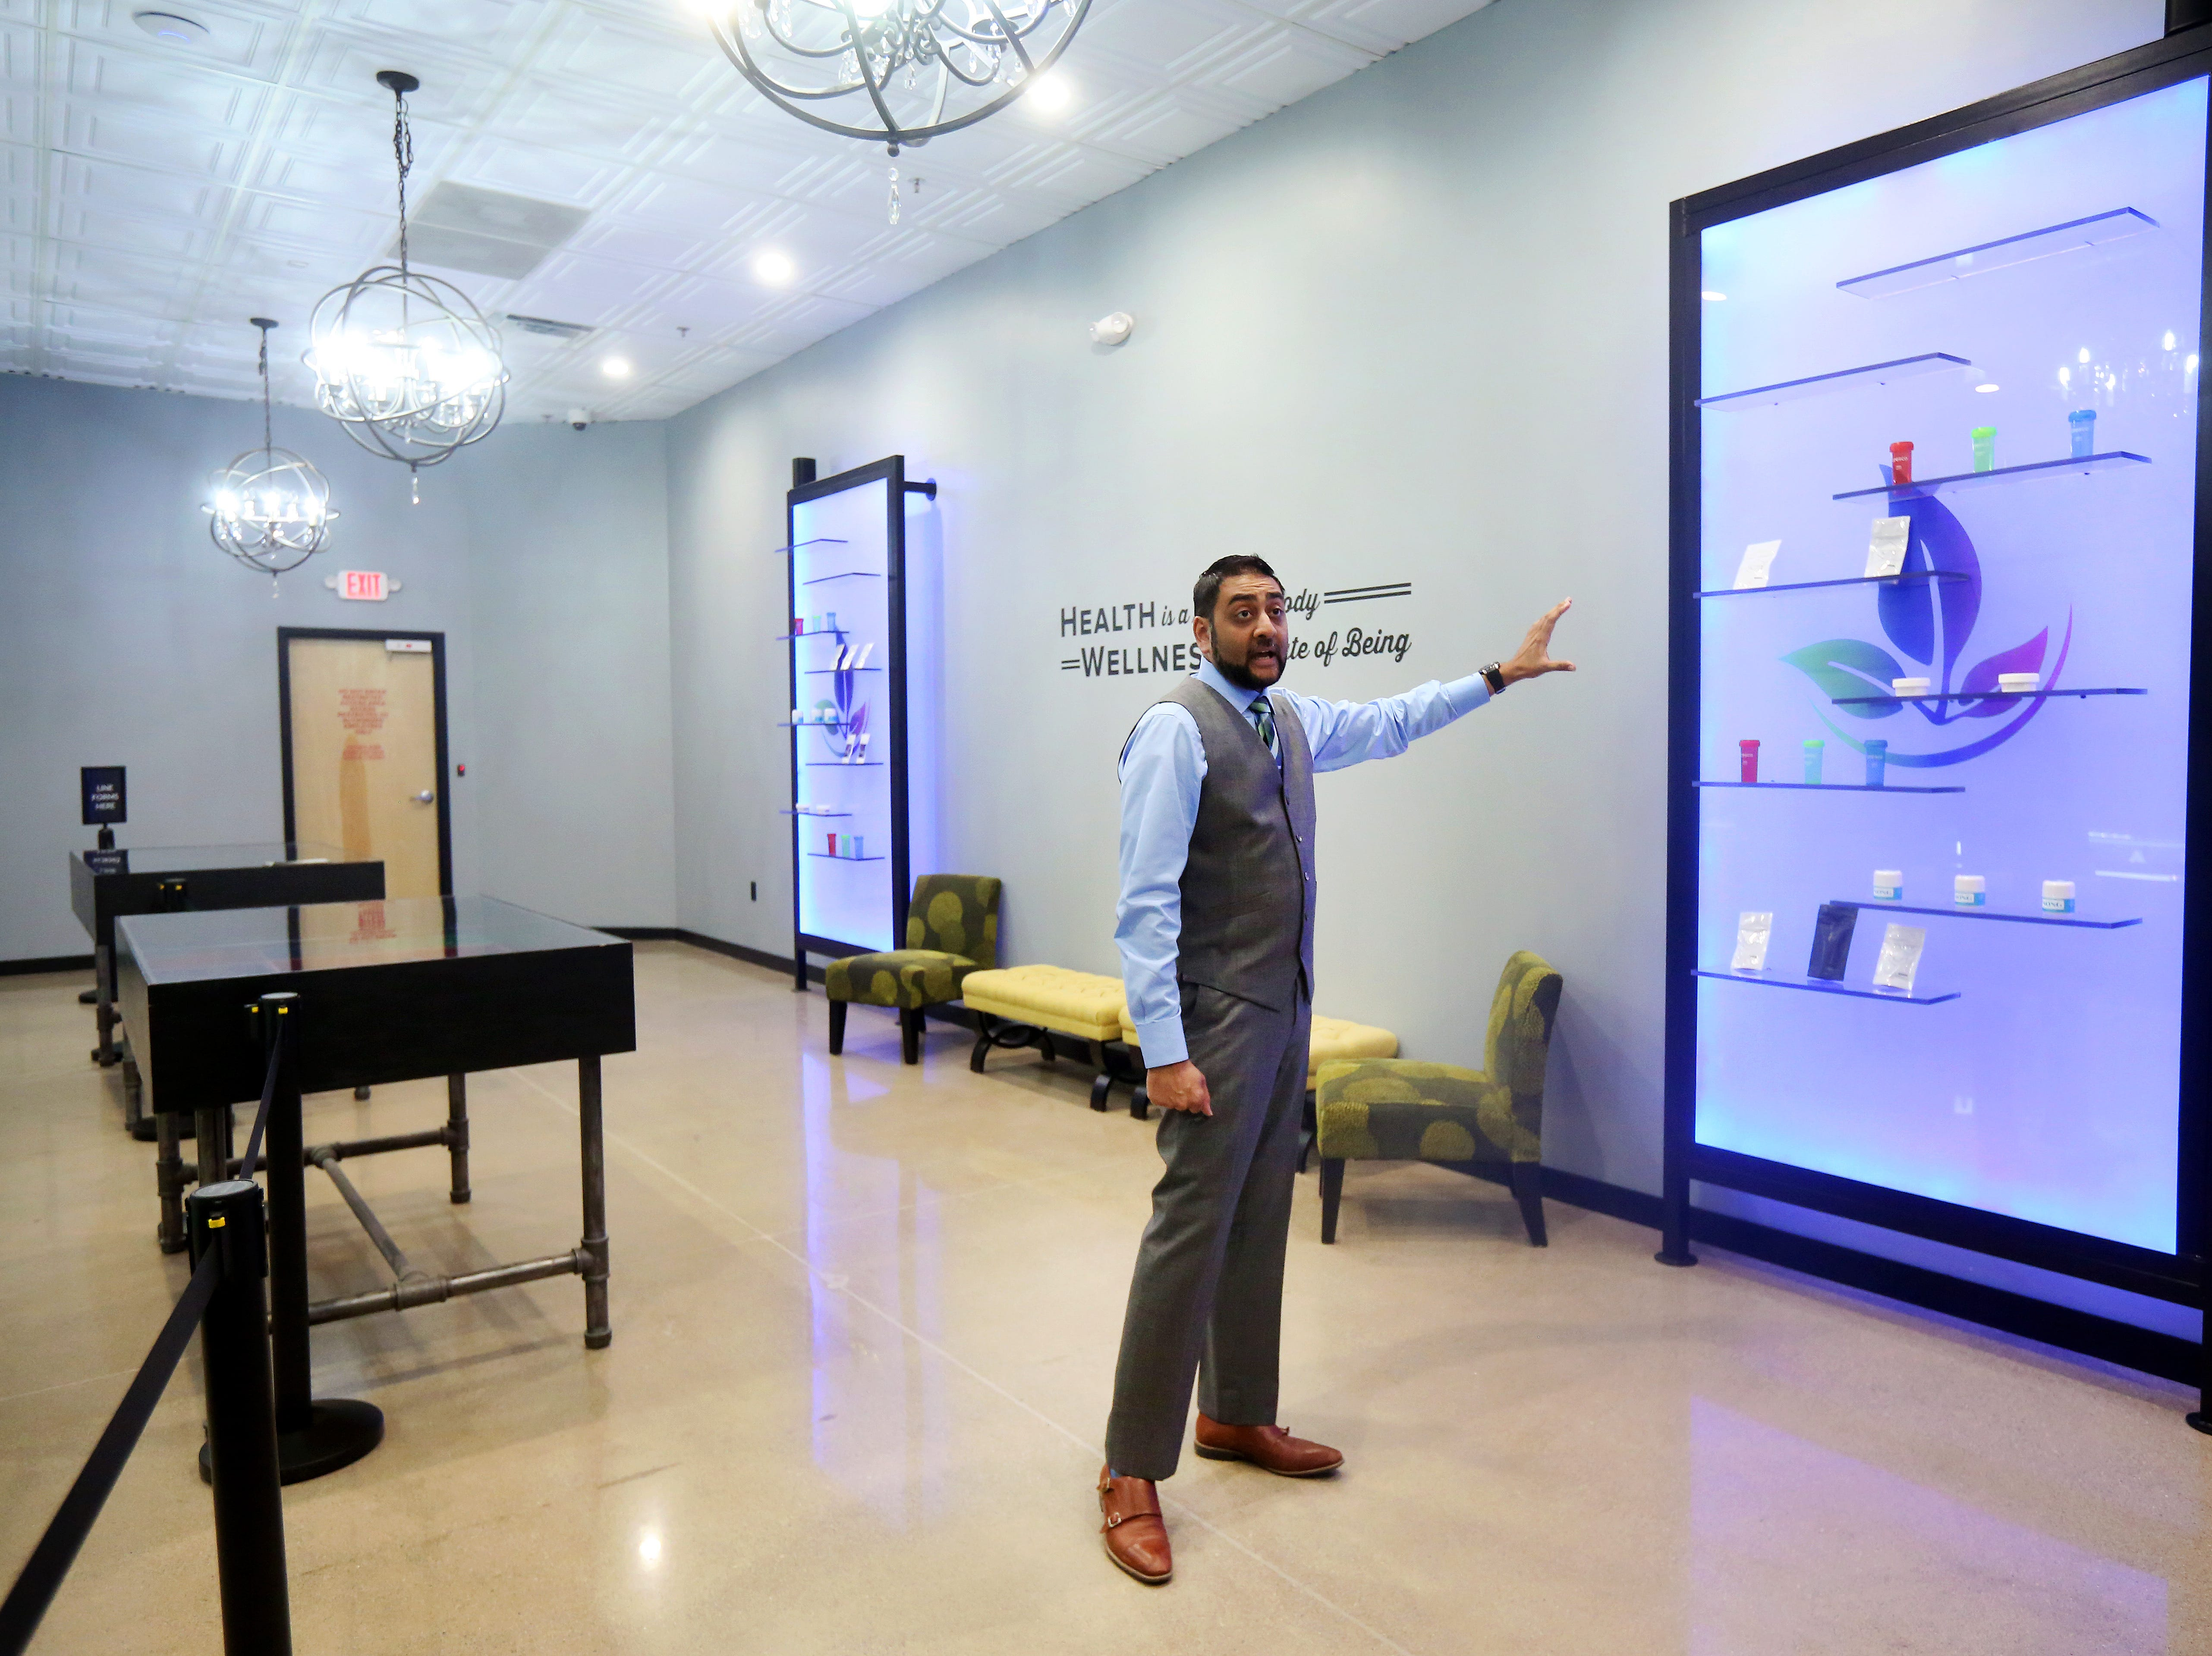 Mac Amin, dispensary manager at About Wellness Ohio, stands inside of the showroom area of the Lebanon facility. Ohio law limits patients to a 90-day supply of medical marijuana.